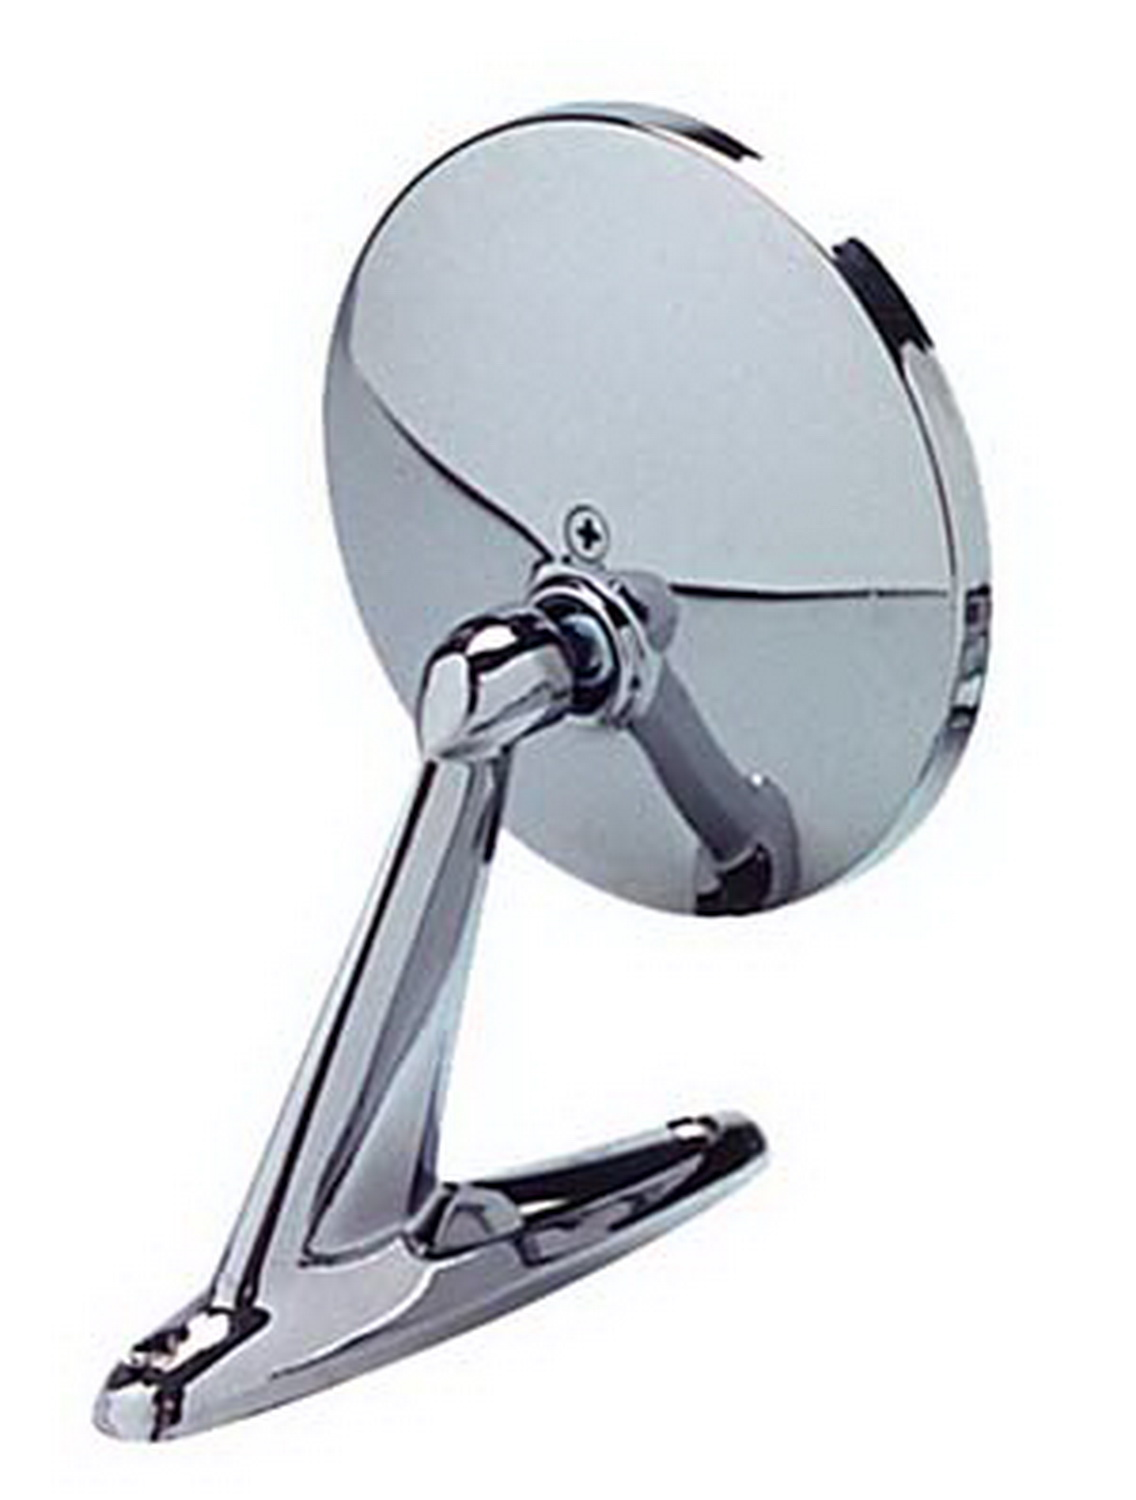 Cipa USA Door Mirror (17000)